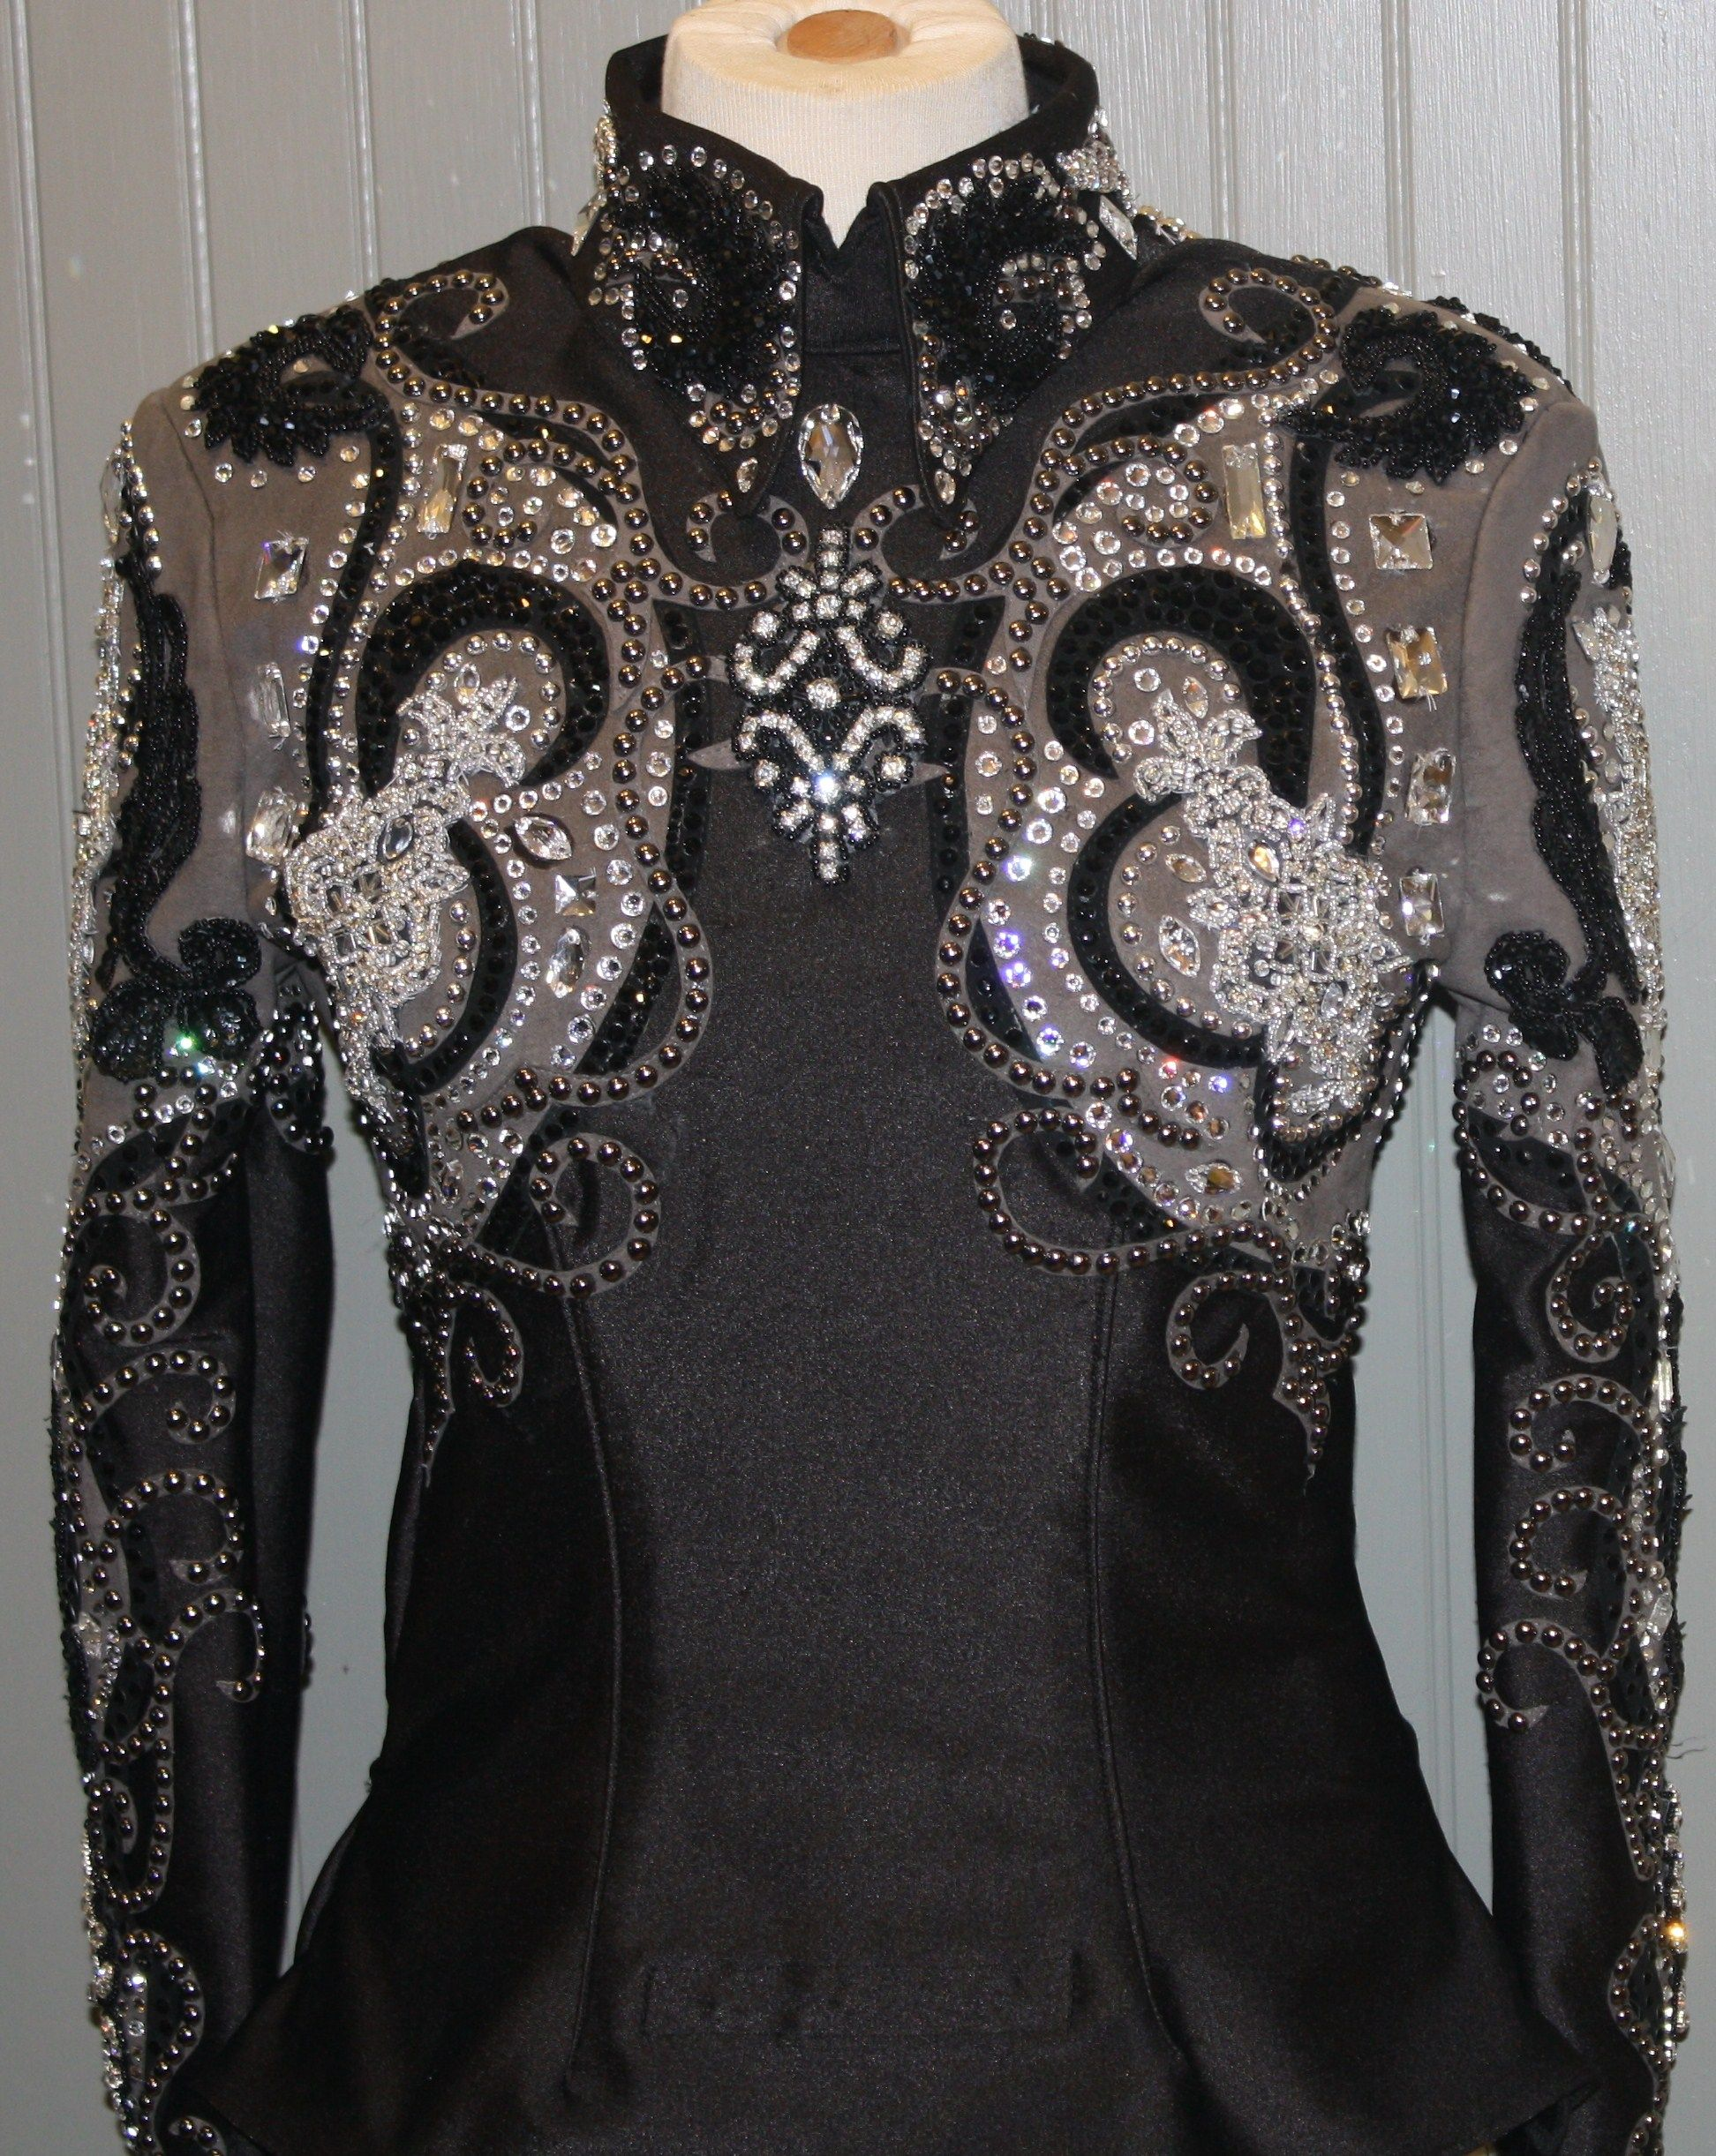 """New Horsemanship Shirt for sale $2995... Gorgeous horsemanship shirt made by Showing Style. Black, Gunmetal Grey and Silver. This custom shirt is edgy and elegant all rolled into one. Made out of a stretch blend fabric. Approximate measurements: Bust - 35 Waist – 30 Hips – 36 Shoulder width – 17 Sleeve Length – 26 Center Back Length – 23 2"""" side seam"""